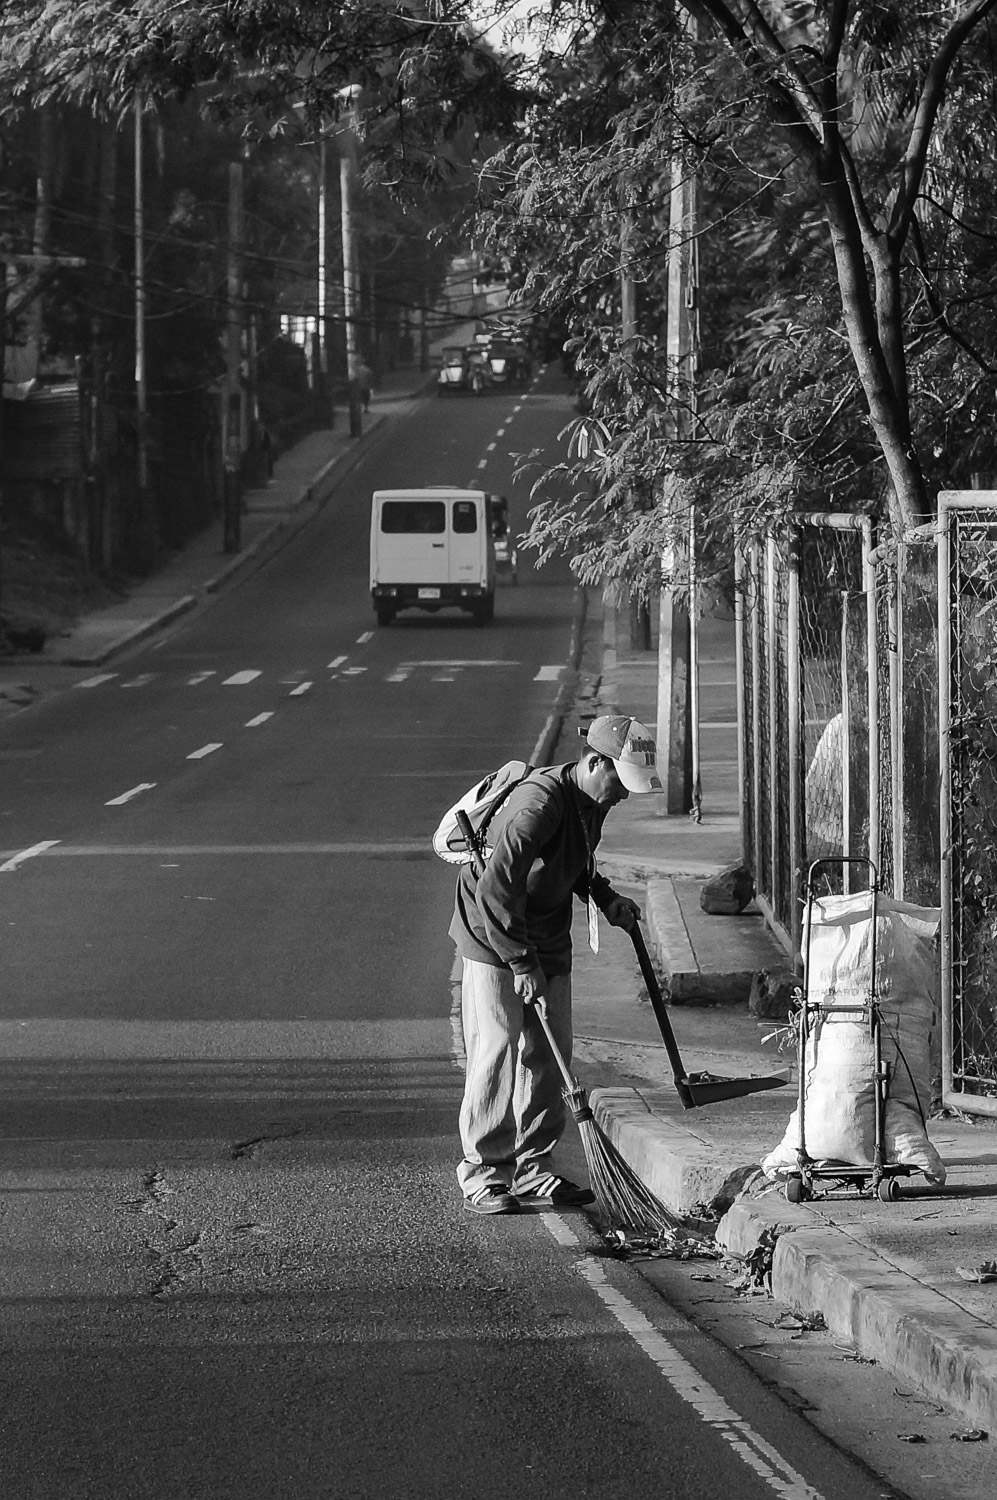 Sweeping the street early in the morning.